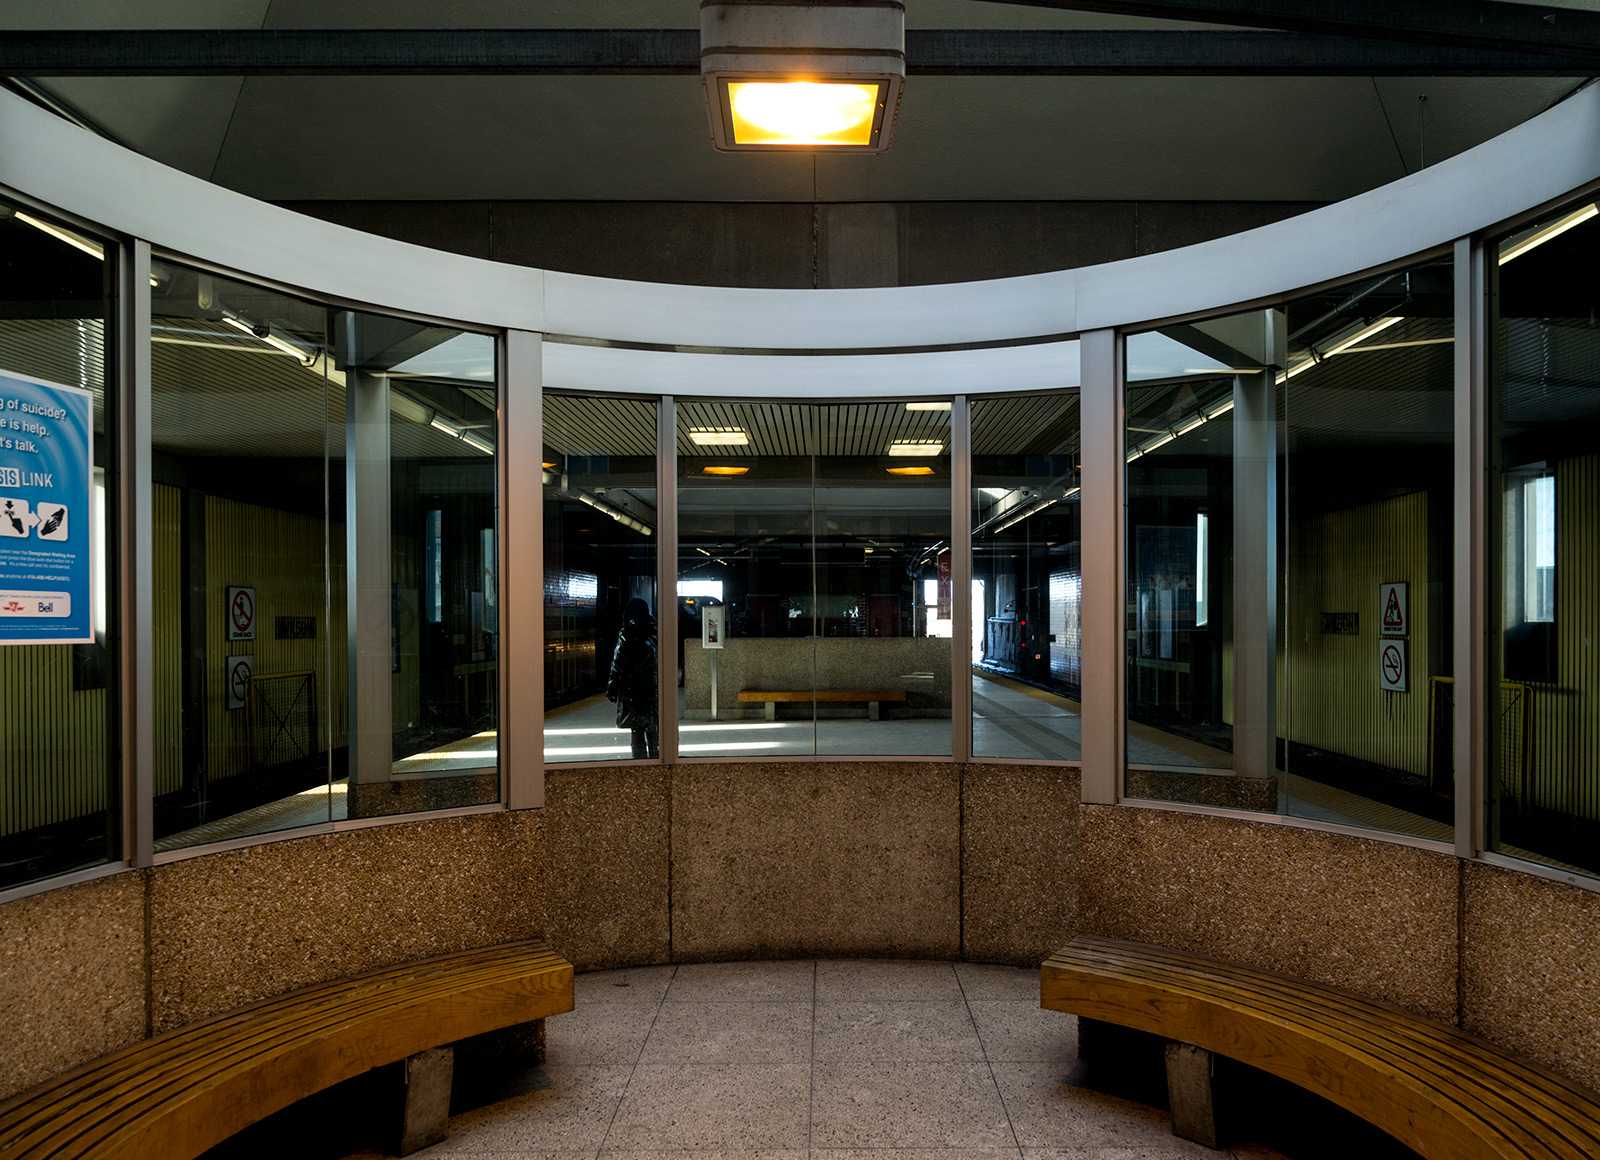 20150202. The curved concrete modernism of Toronto's TTC Wilson